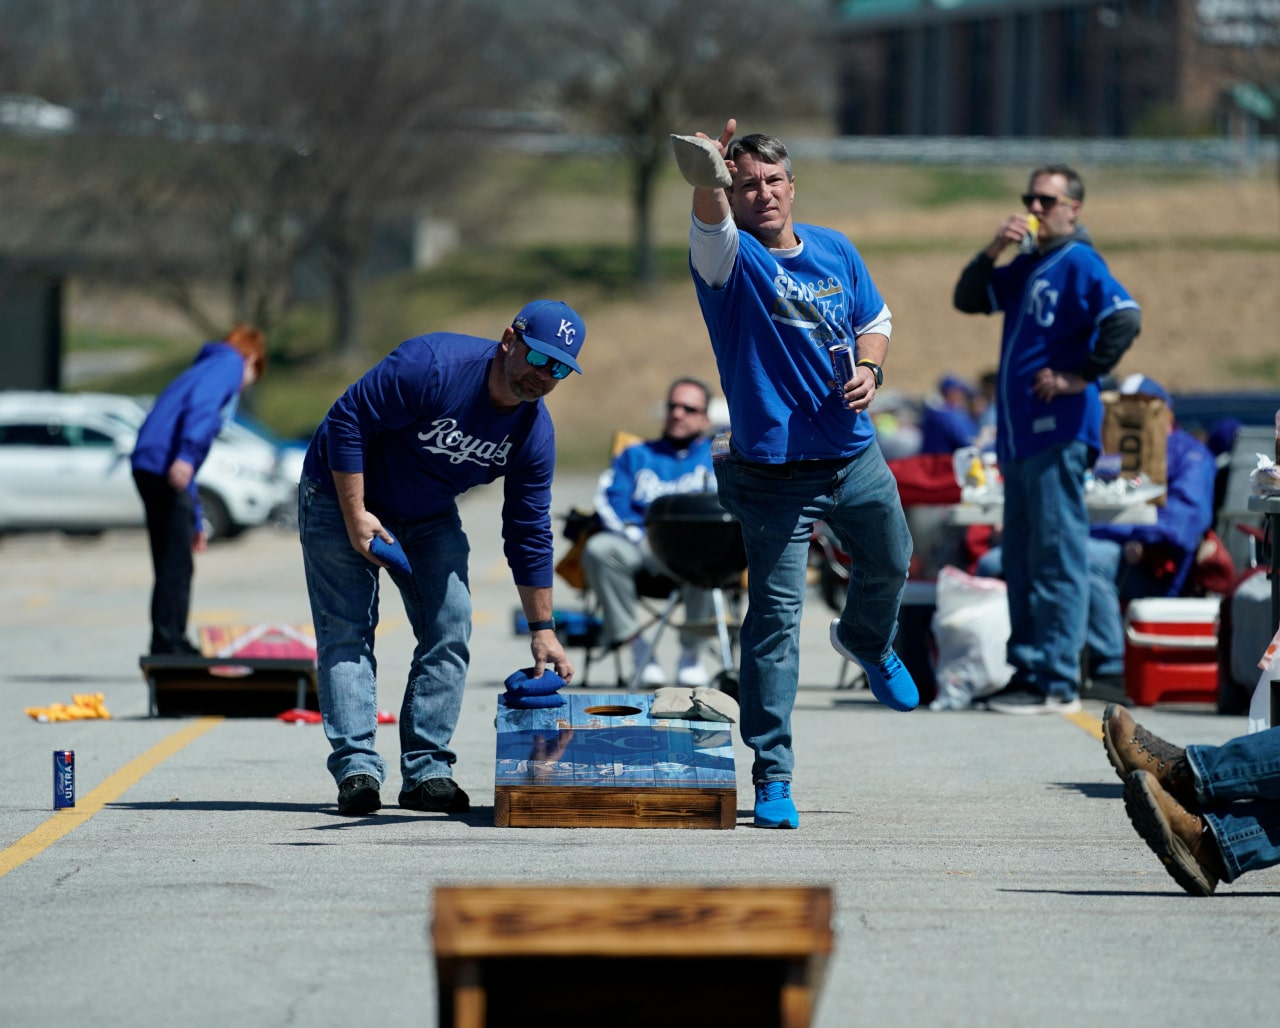 Kansas City Royals fans excited to be back at Kauffman Stadium